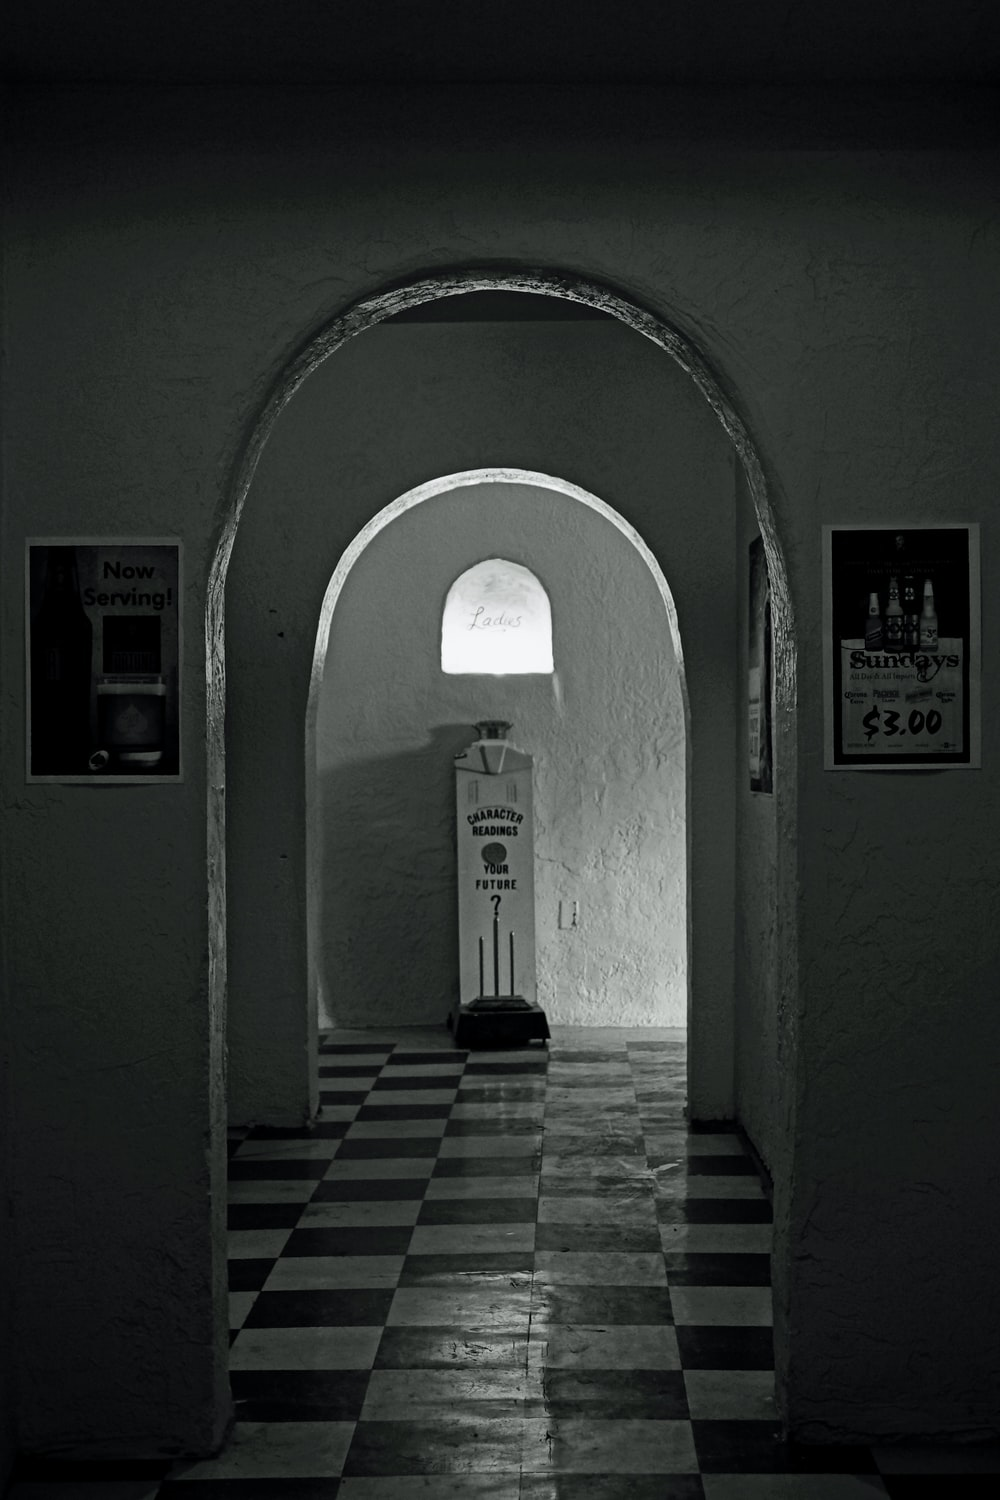 grayscale photo of hallway with no people